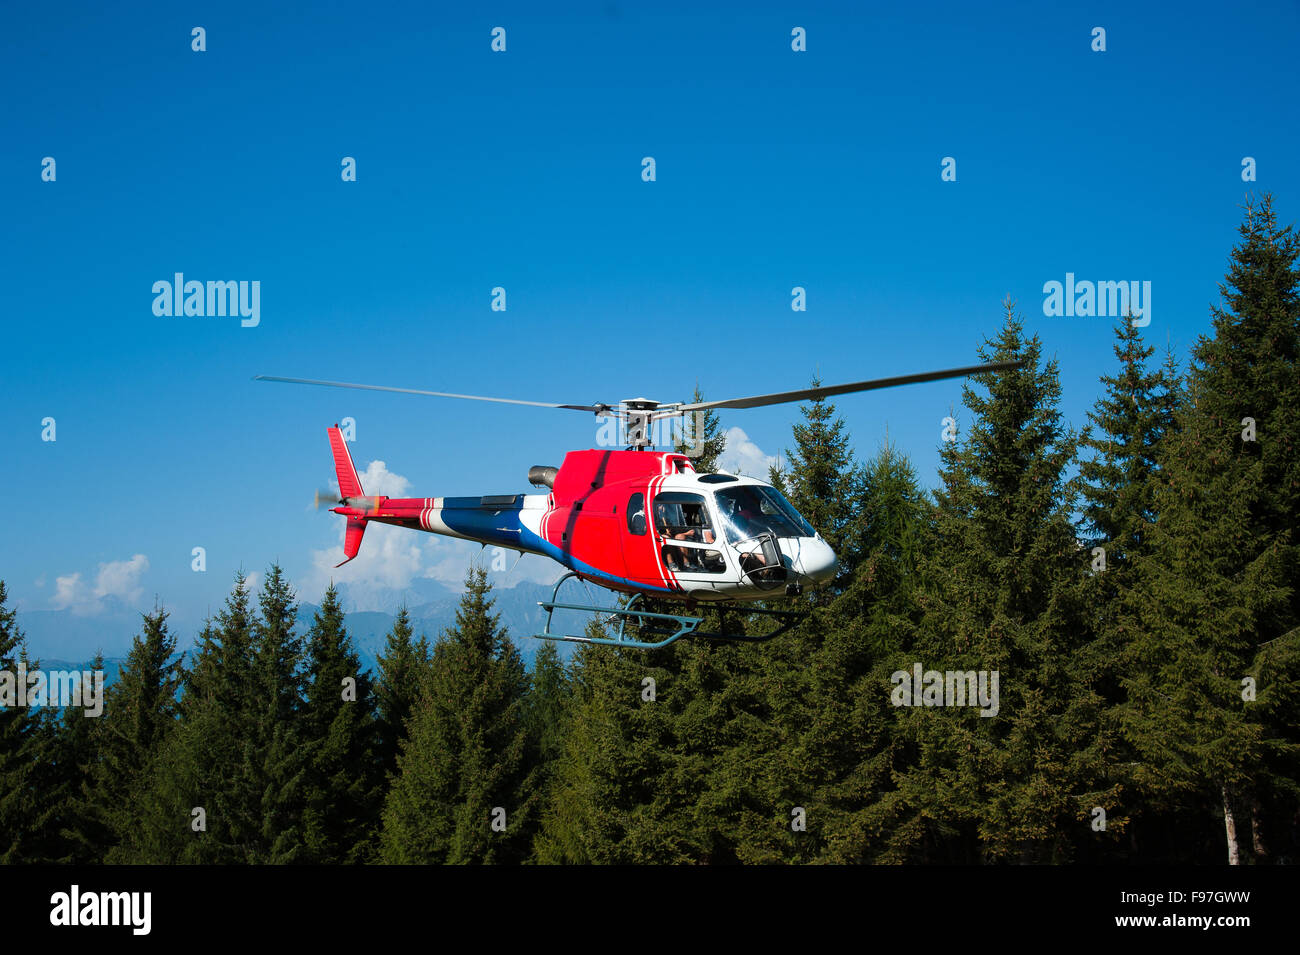 helicopter in the landing phase - Stock Image